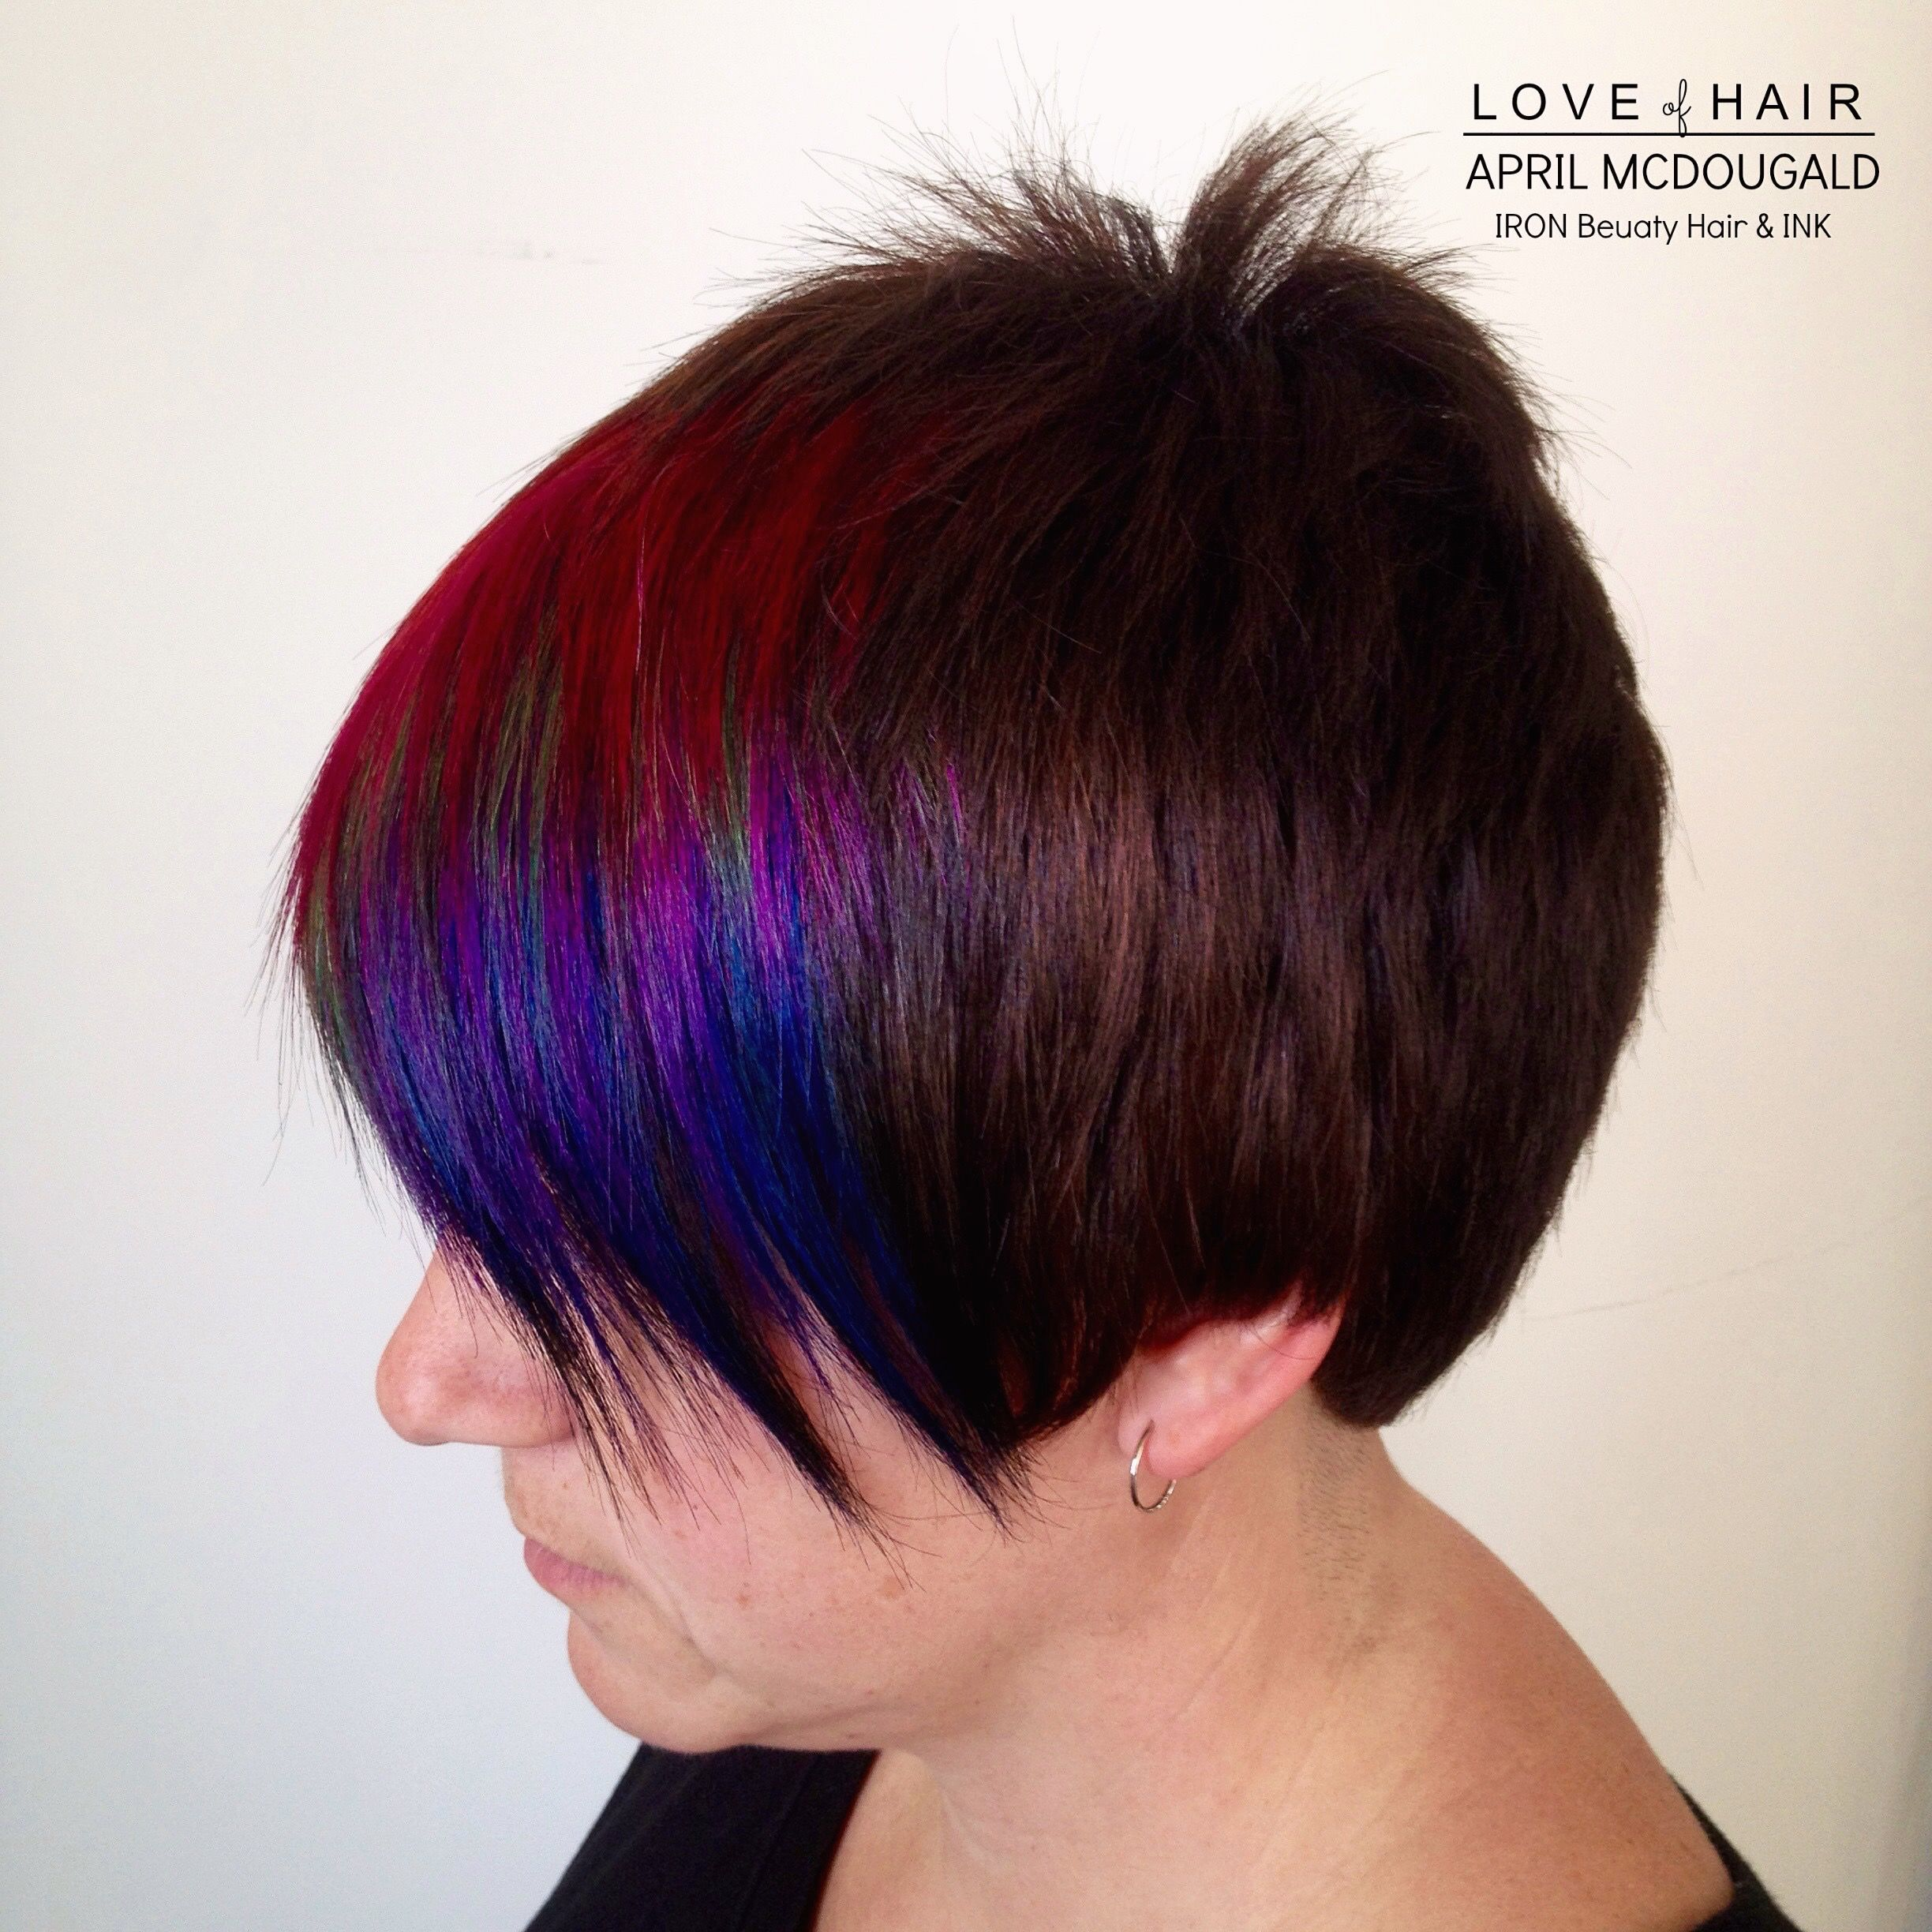 Joico hair color tags color jocio joico - Joico Color Intensities Bright Colors Pink Hair Blue Hair Red Hair